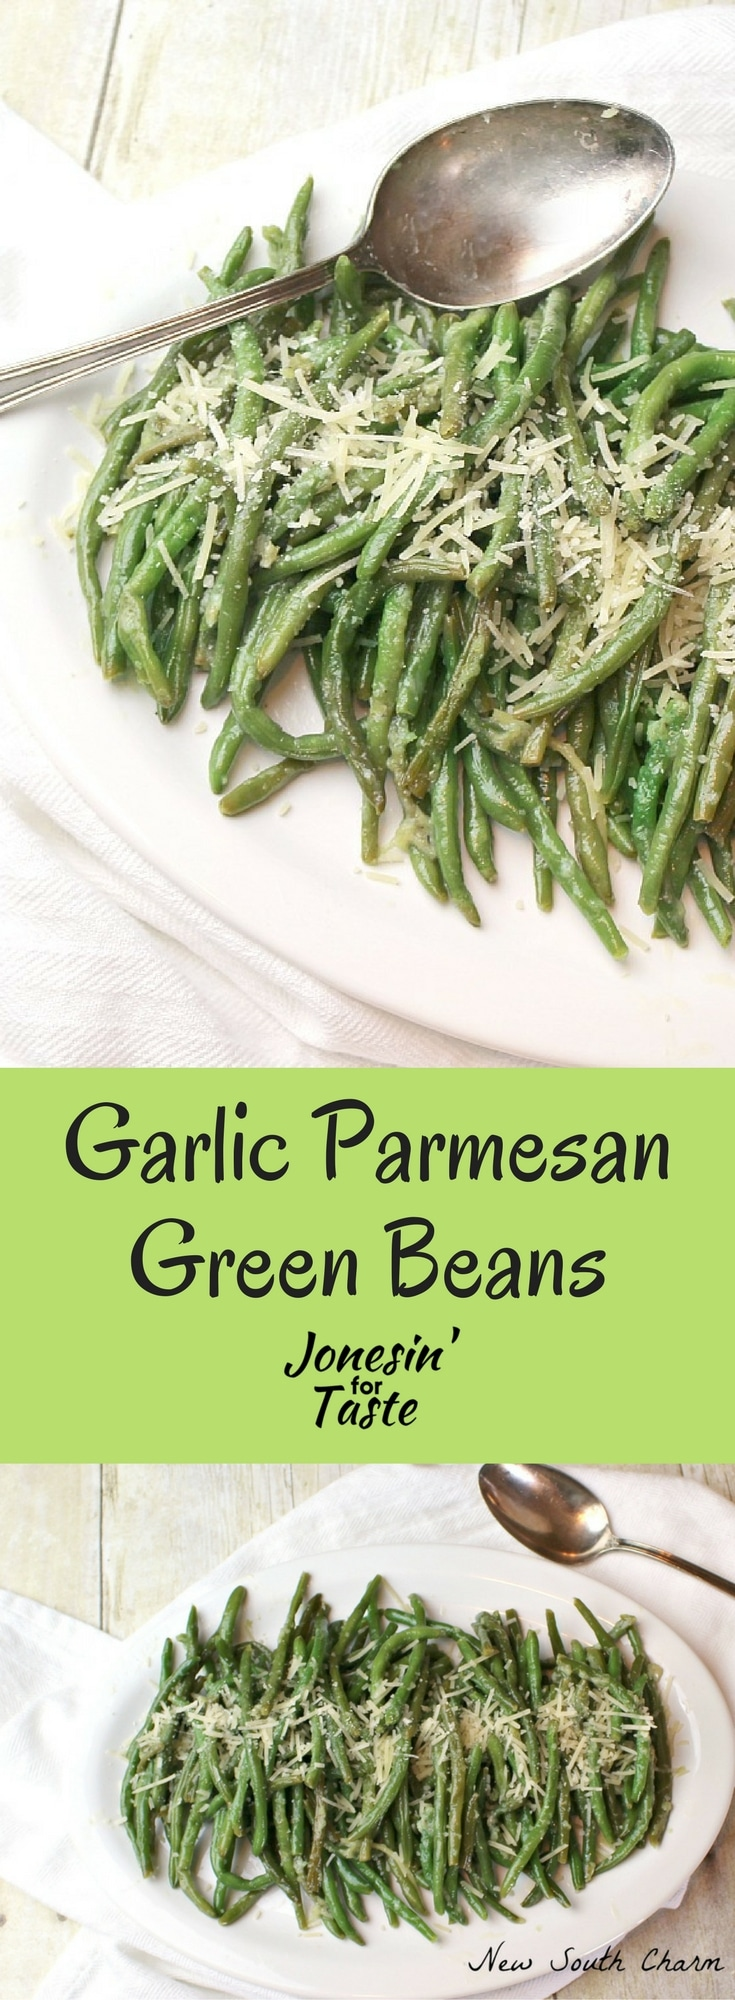 Parmesan Garlic Green Beans are the perfect side dish easily made in under 20 minutes and simply seasoned with classic flavors of parmesan and garlic.